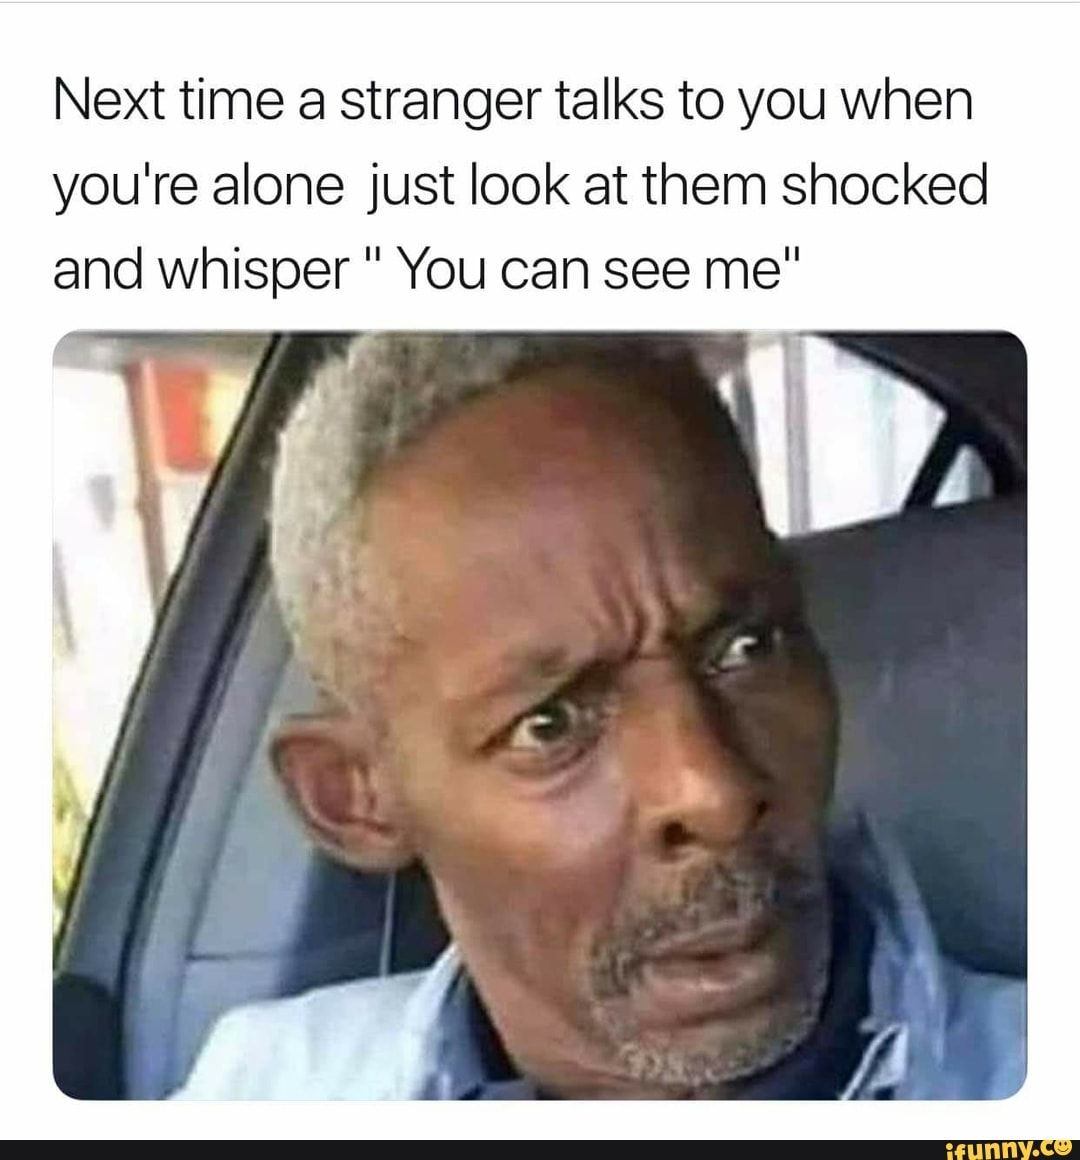 Next Time A Stranger Talks To You When You Re Alone Just Look At Them Shocked And Whisper You Can See Me Ifunny Really Funny Memes Stupid Funny Memes Stupid Memes